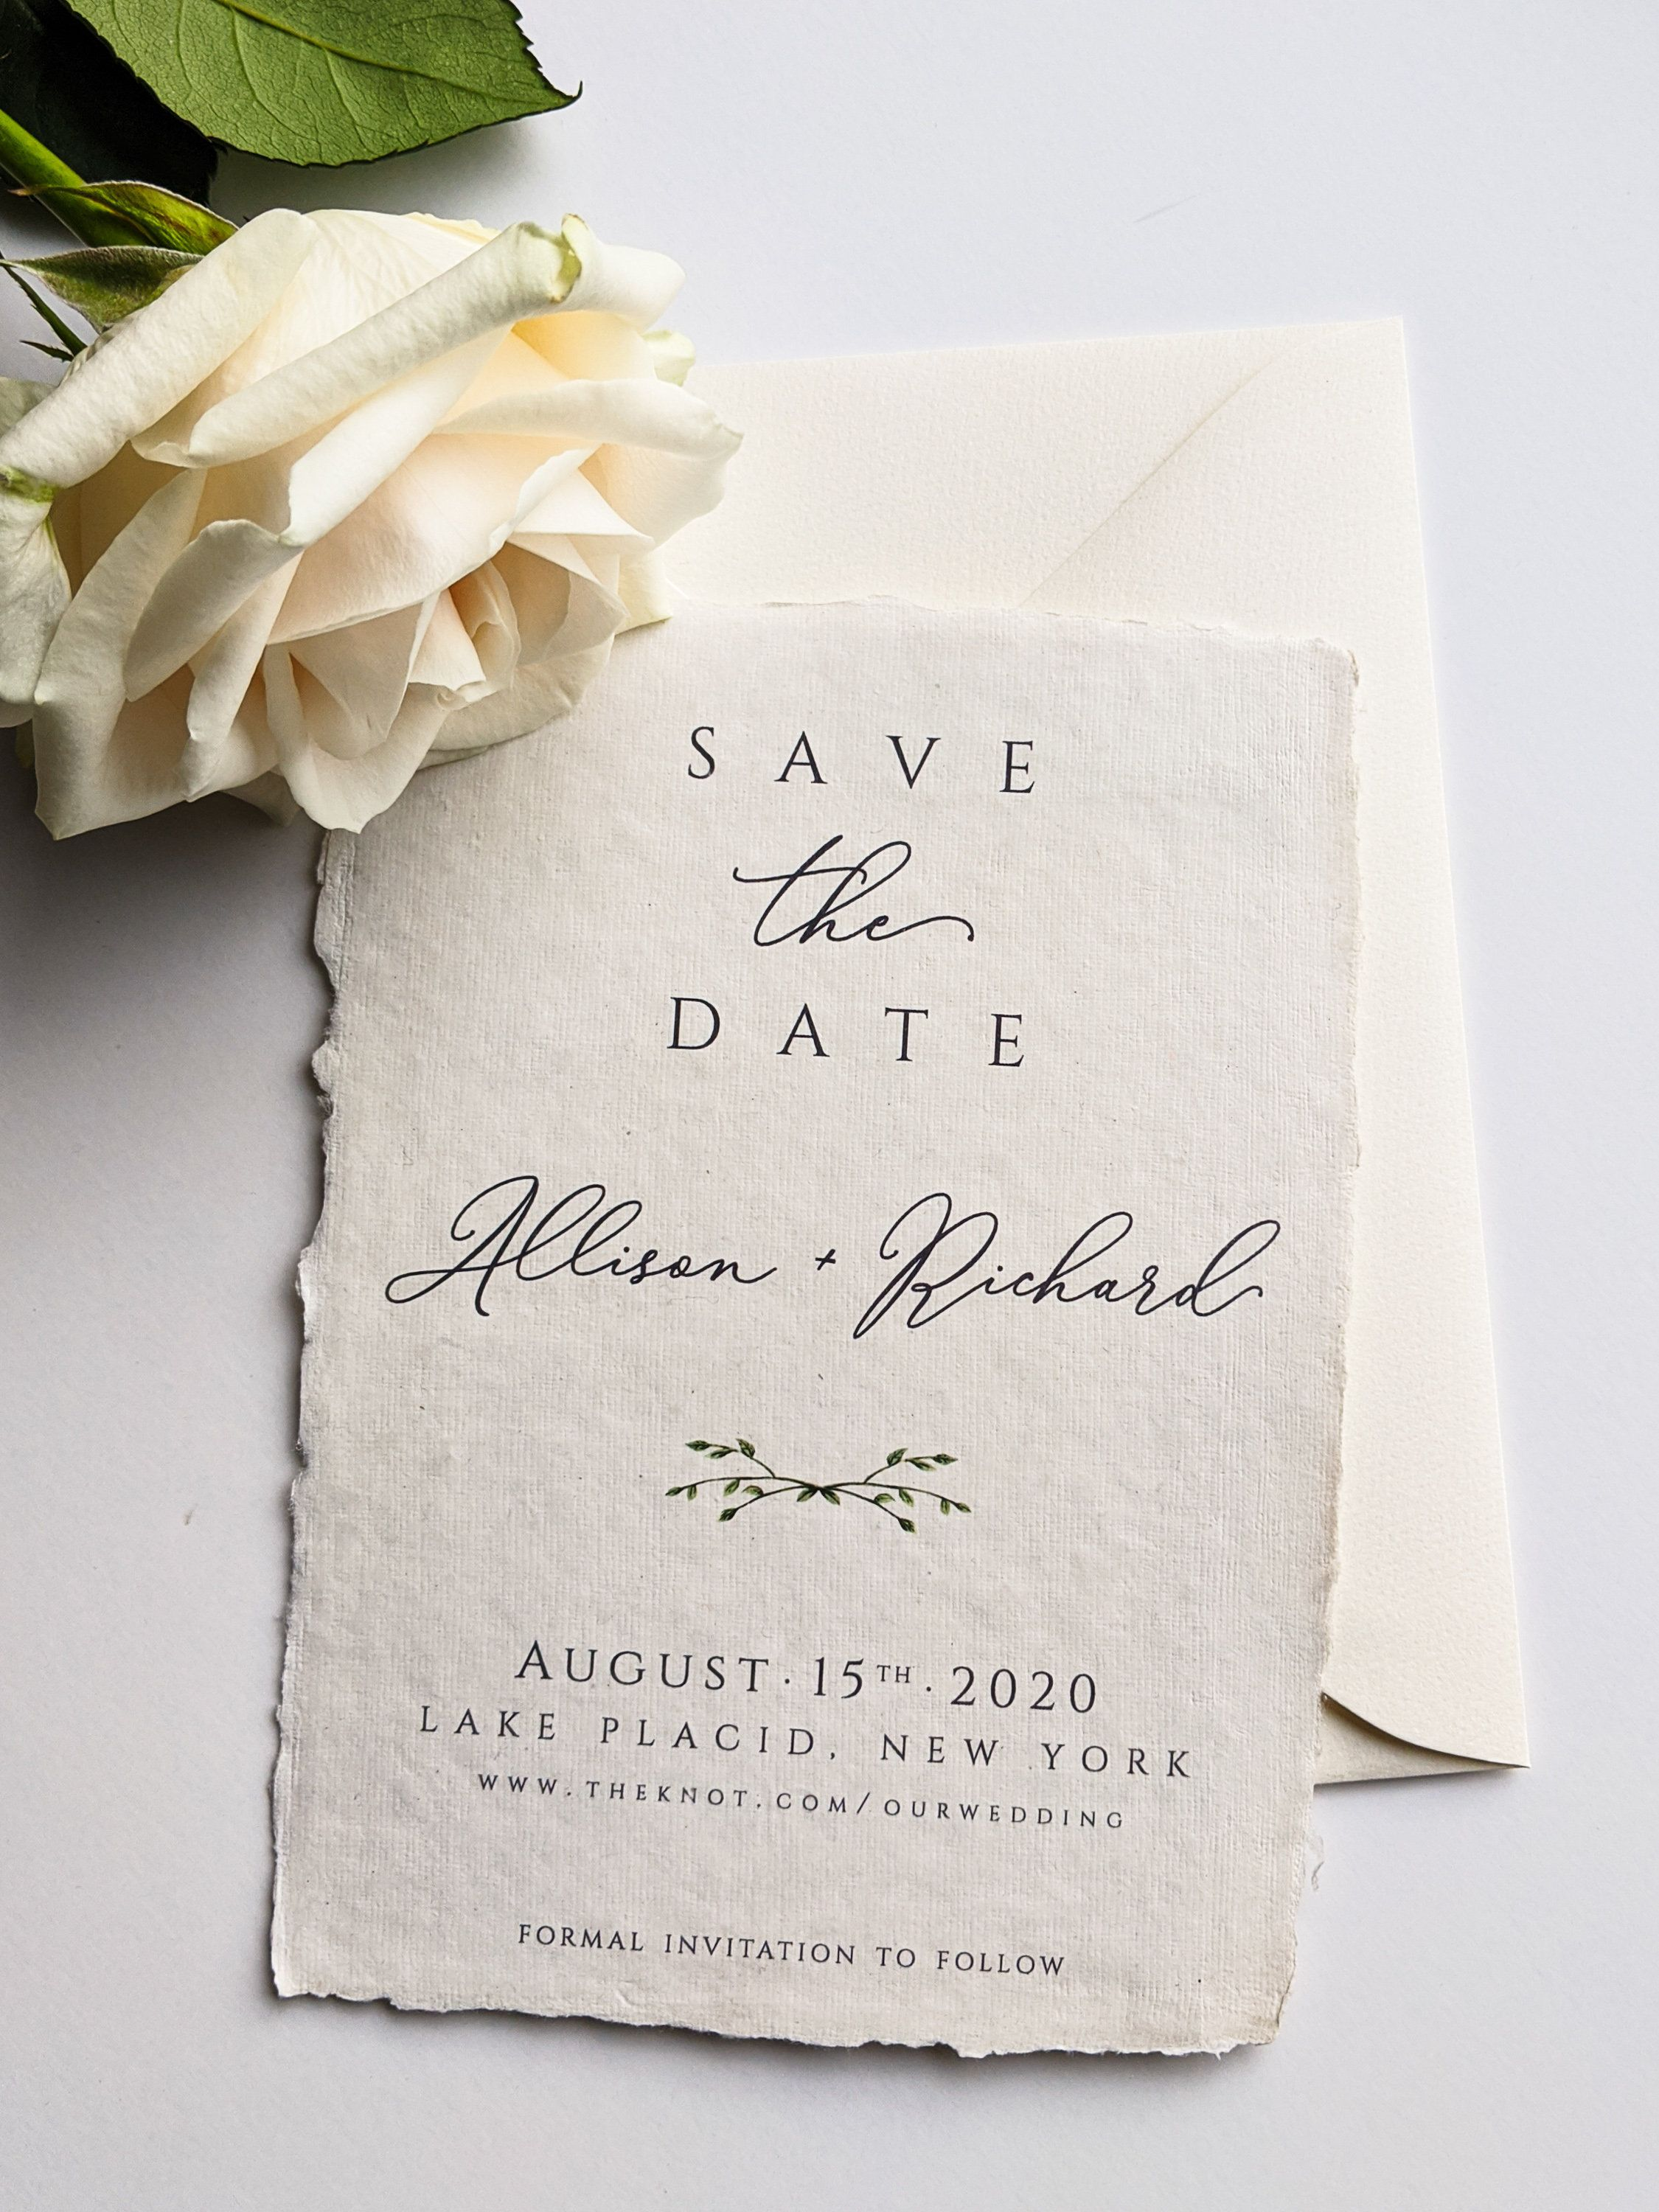 Save the Date Handmade Paper Handmade Paper Save the date Save our Date Vintage Book Save the Date Letterpress Save the Date